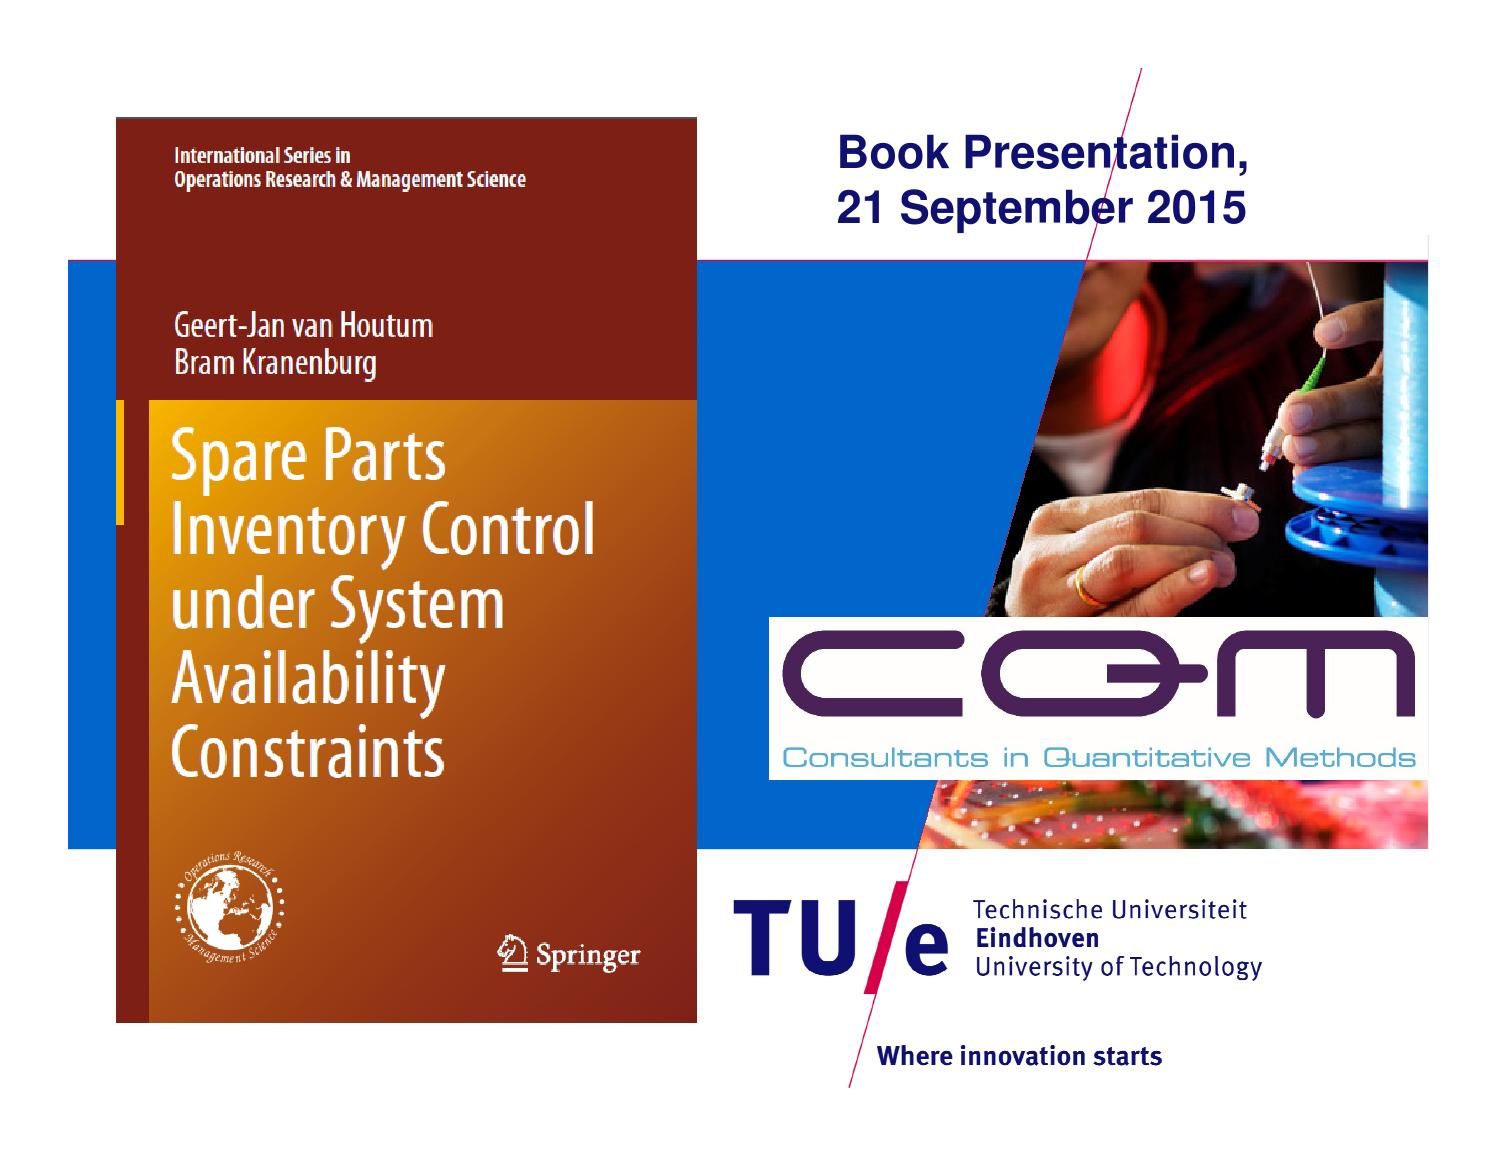 Bookpresentation Spare Parts Inventory Control under System